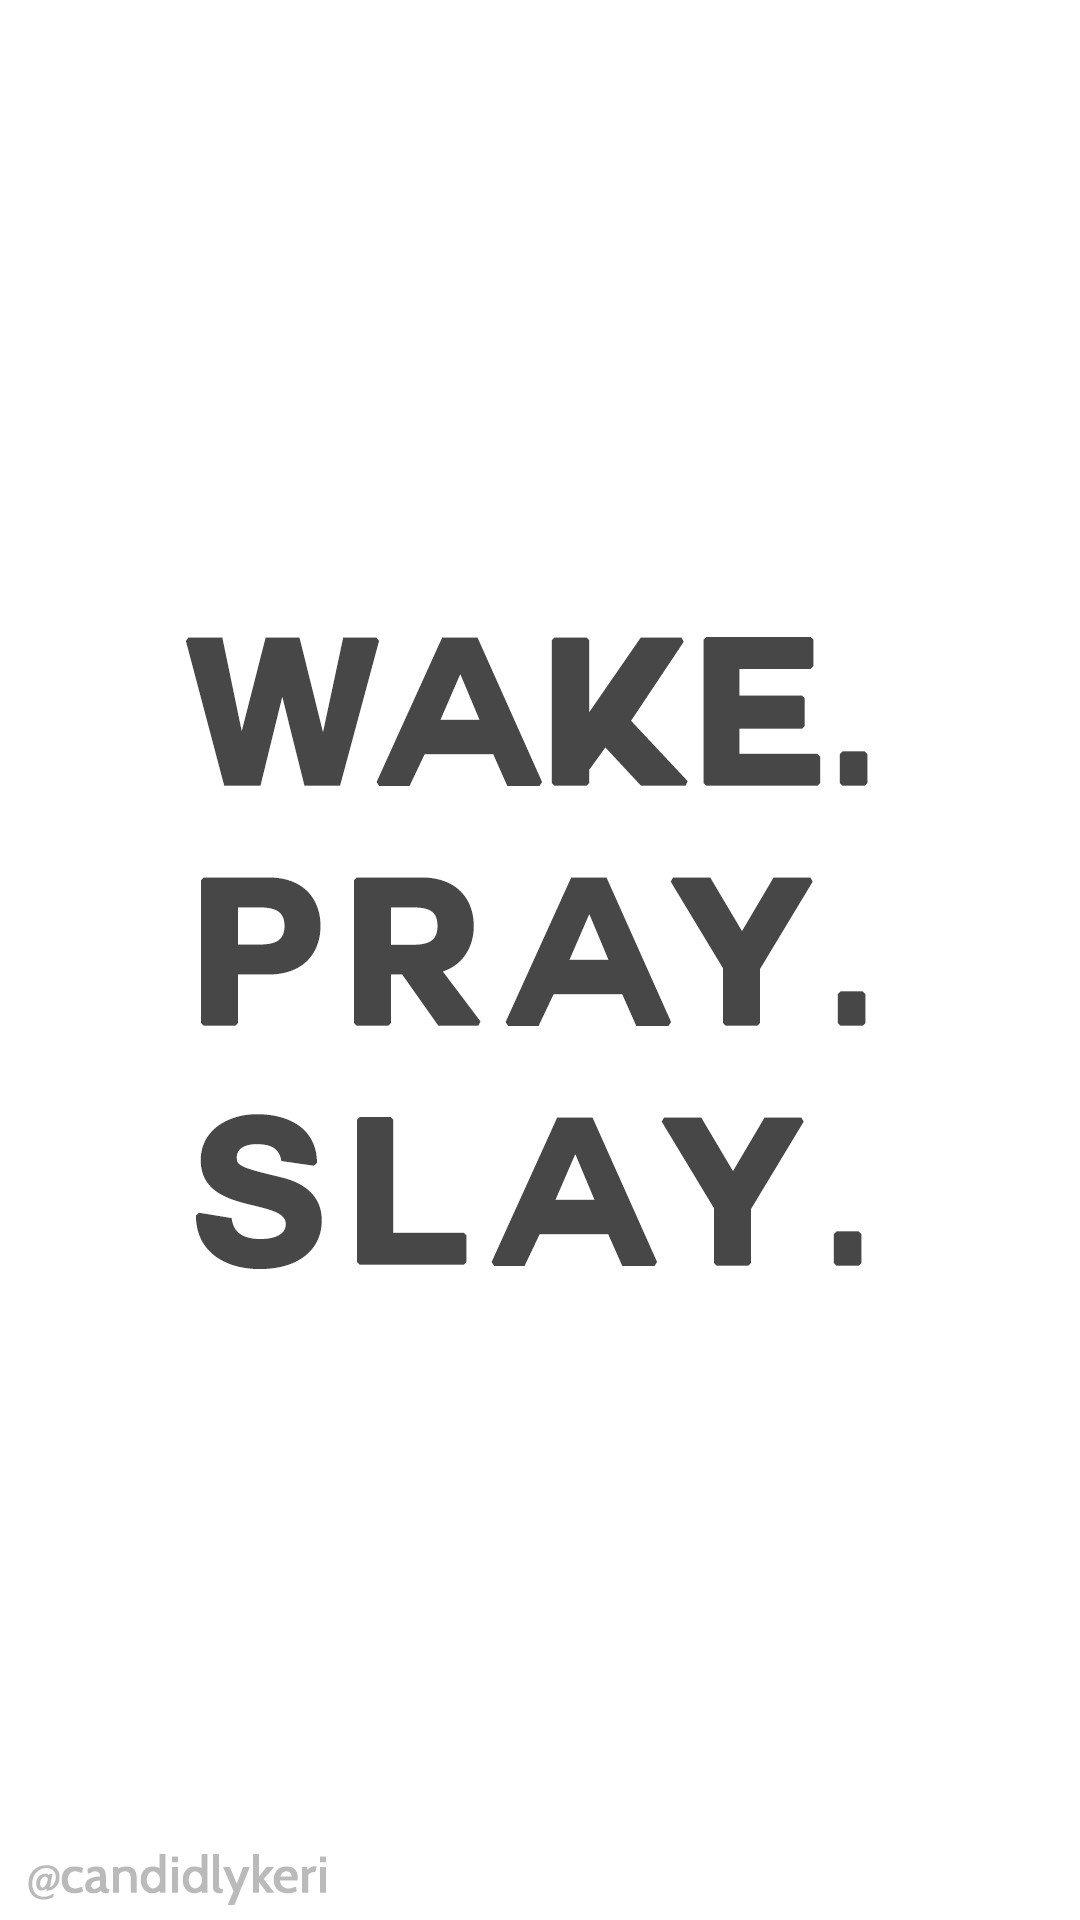 1080x1920 Wake Pray Slay quote motivation background wallpaper you can download for  free on the blog!